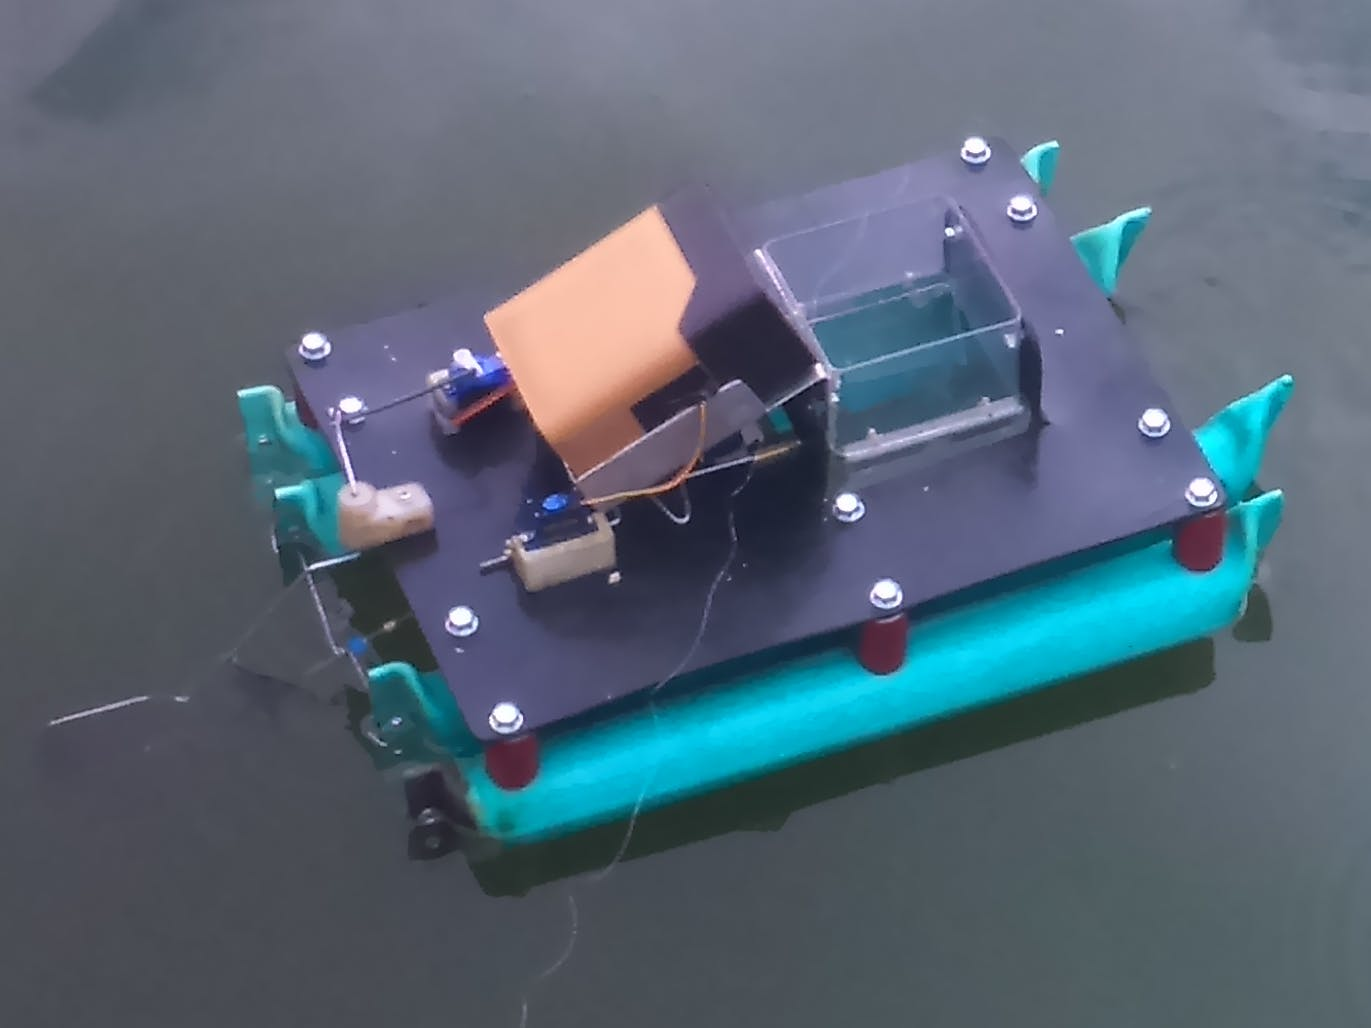 Drone boat controlled through the internet